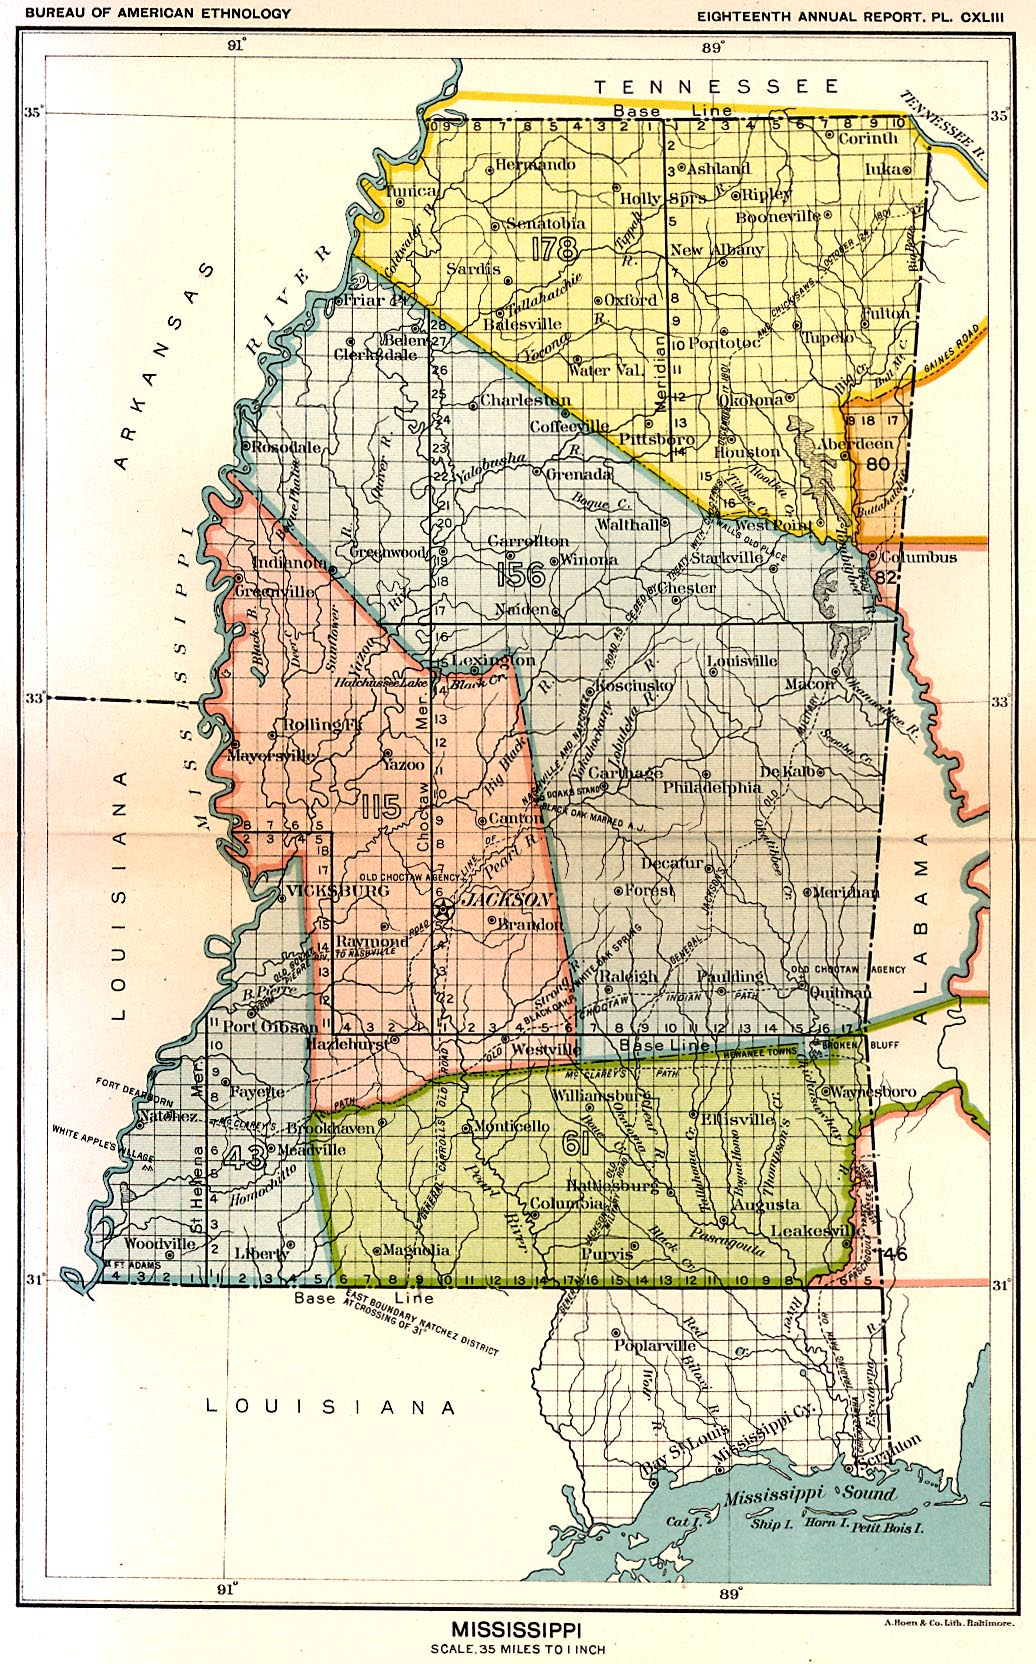 Amite County Mississippi Maps At Mississippi Genealogy History - Counties in ms map